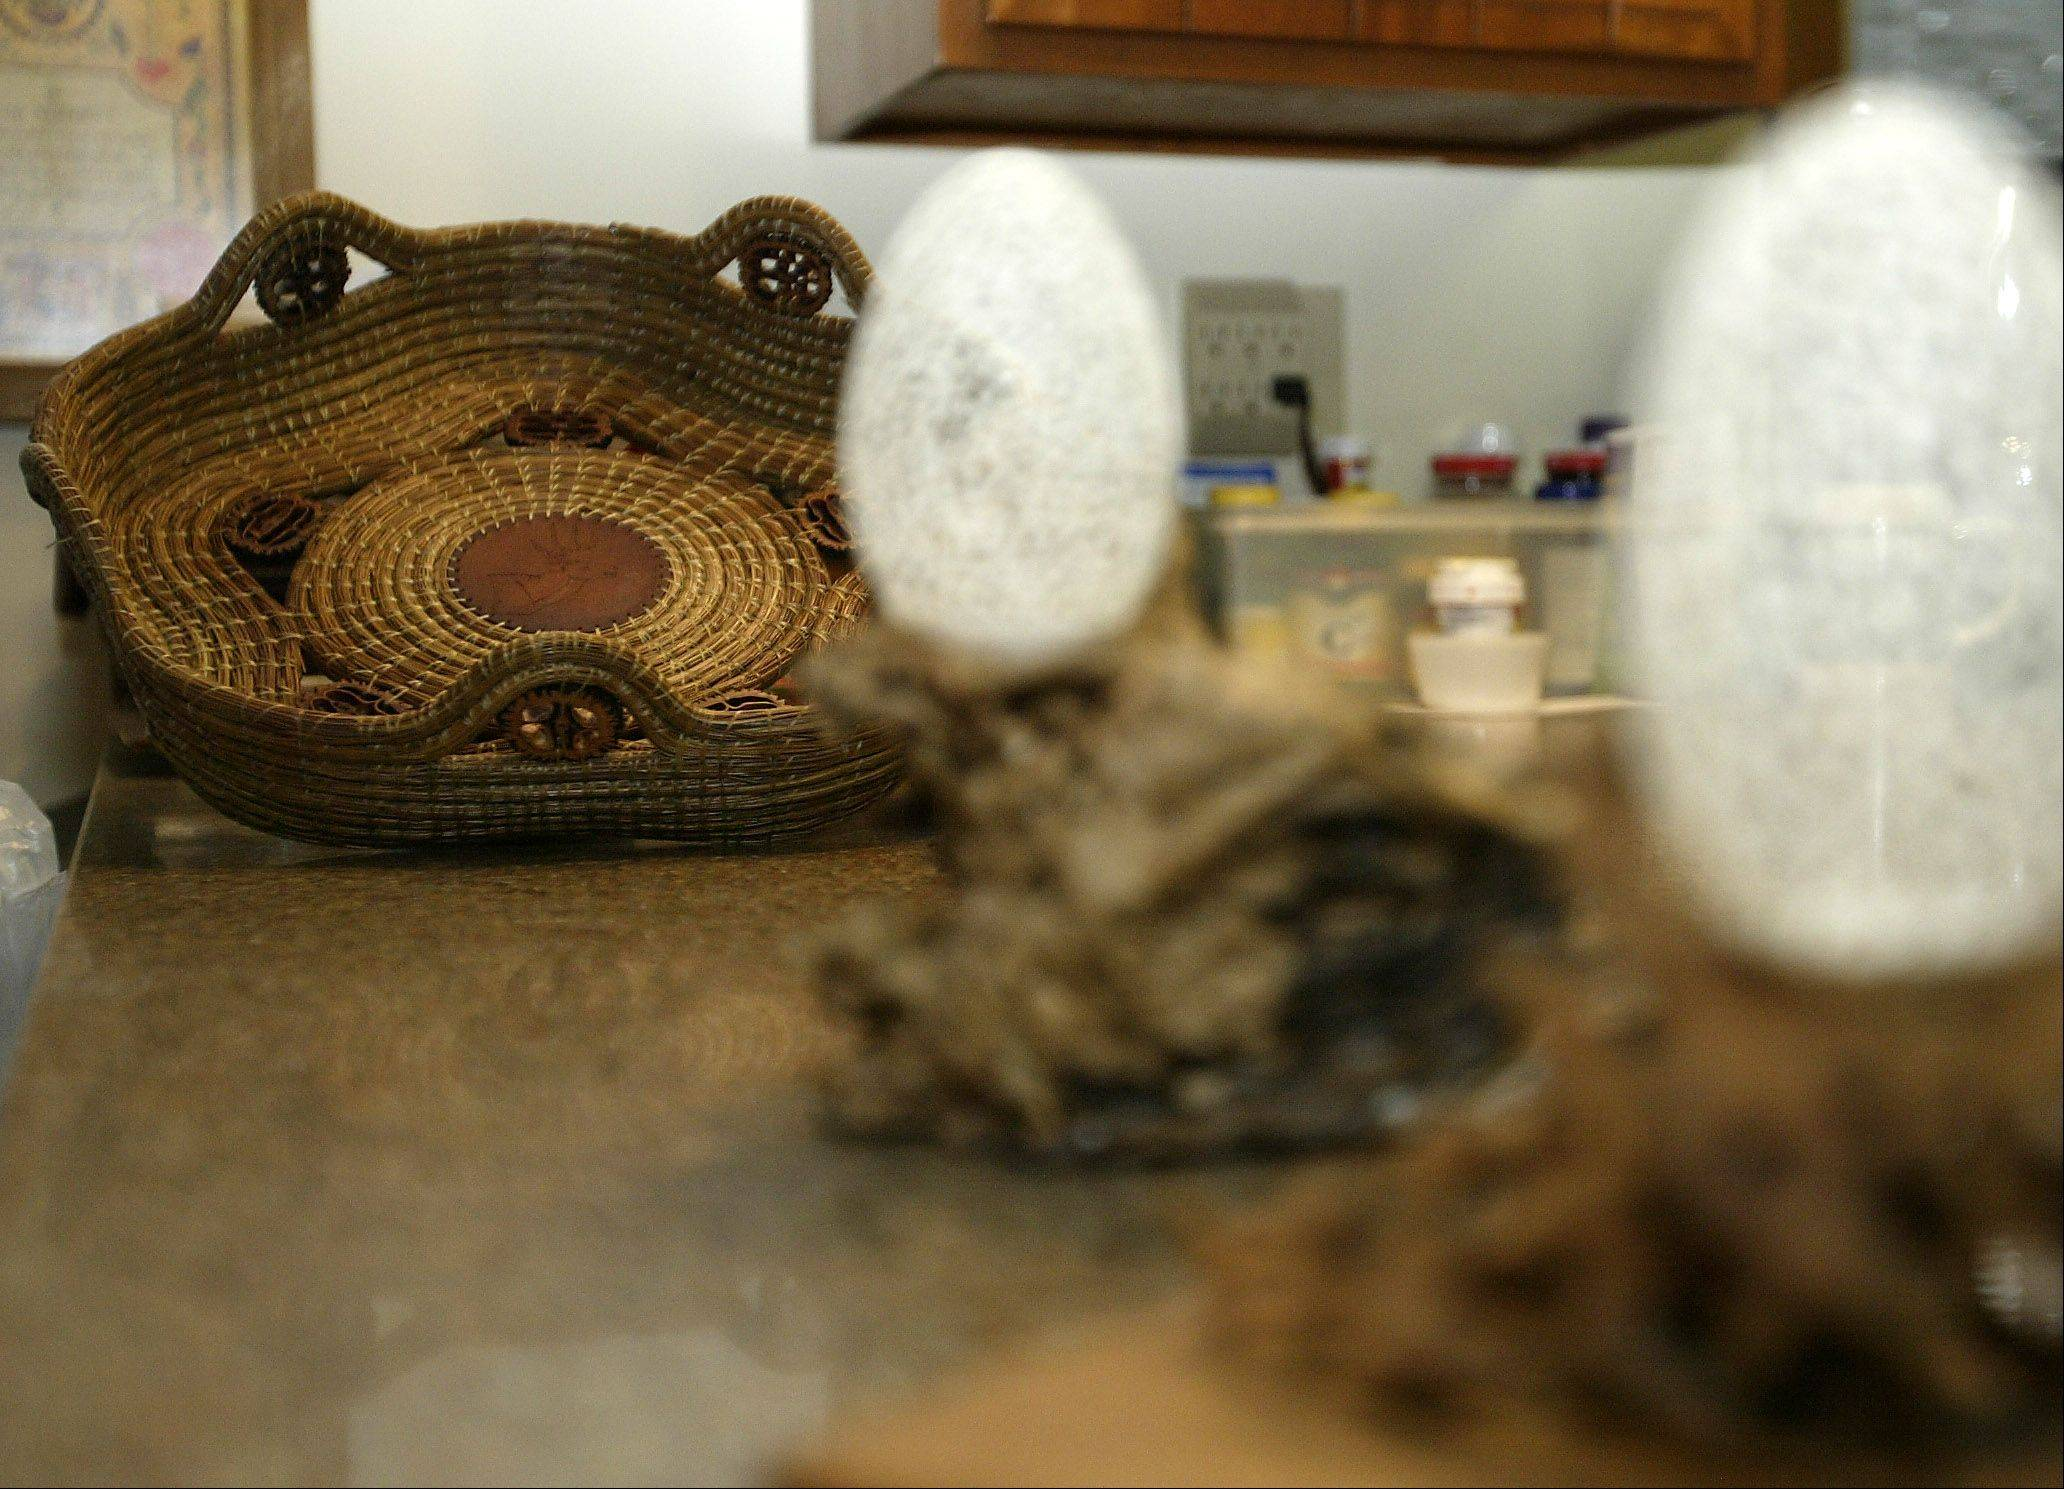 John Warnock of Gilberts began making pine needle baskets and carving eggshells about five years ago. He can finish an egg in approximately two weeks and a basket in anywhere from one to three weeks depending on the stitching pattern he uses.